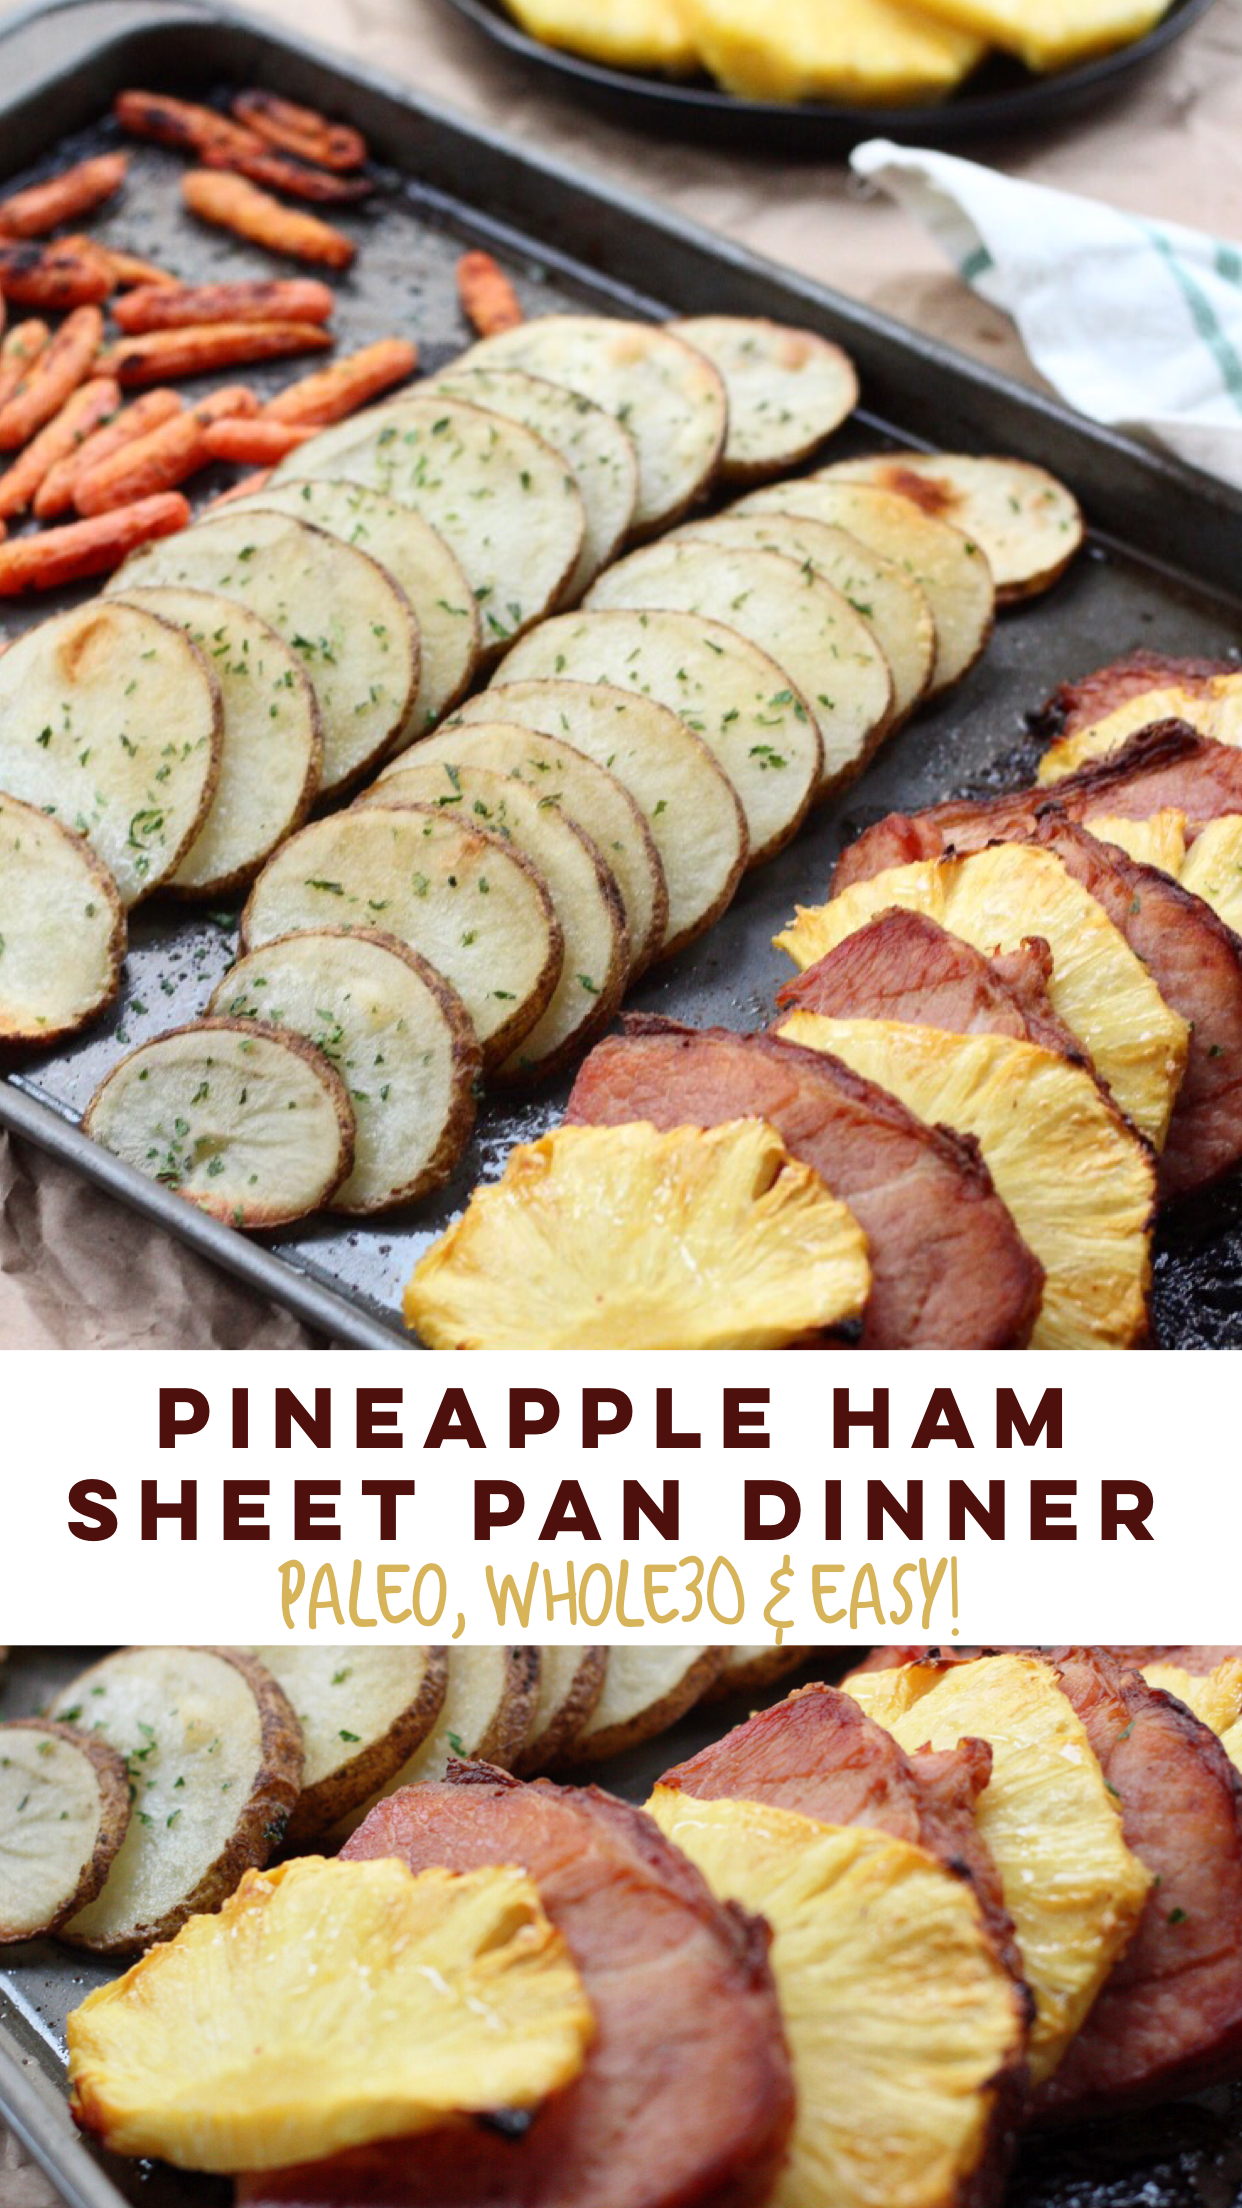 Simple and healthy pineapple ham sheet pan dinner! This easy Paleo sheet pan meal is family friendly, and Whole30 when made sugar free ham. It's a great holiday leftover meal or an easy meal prep idea #sheetpan #hamrecipes #paleosheetpan #whole30sheetpan via @paleobailey